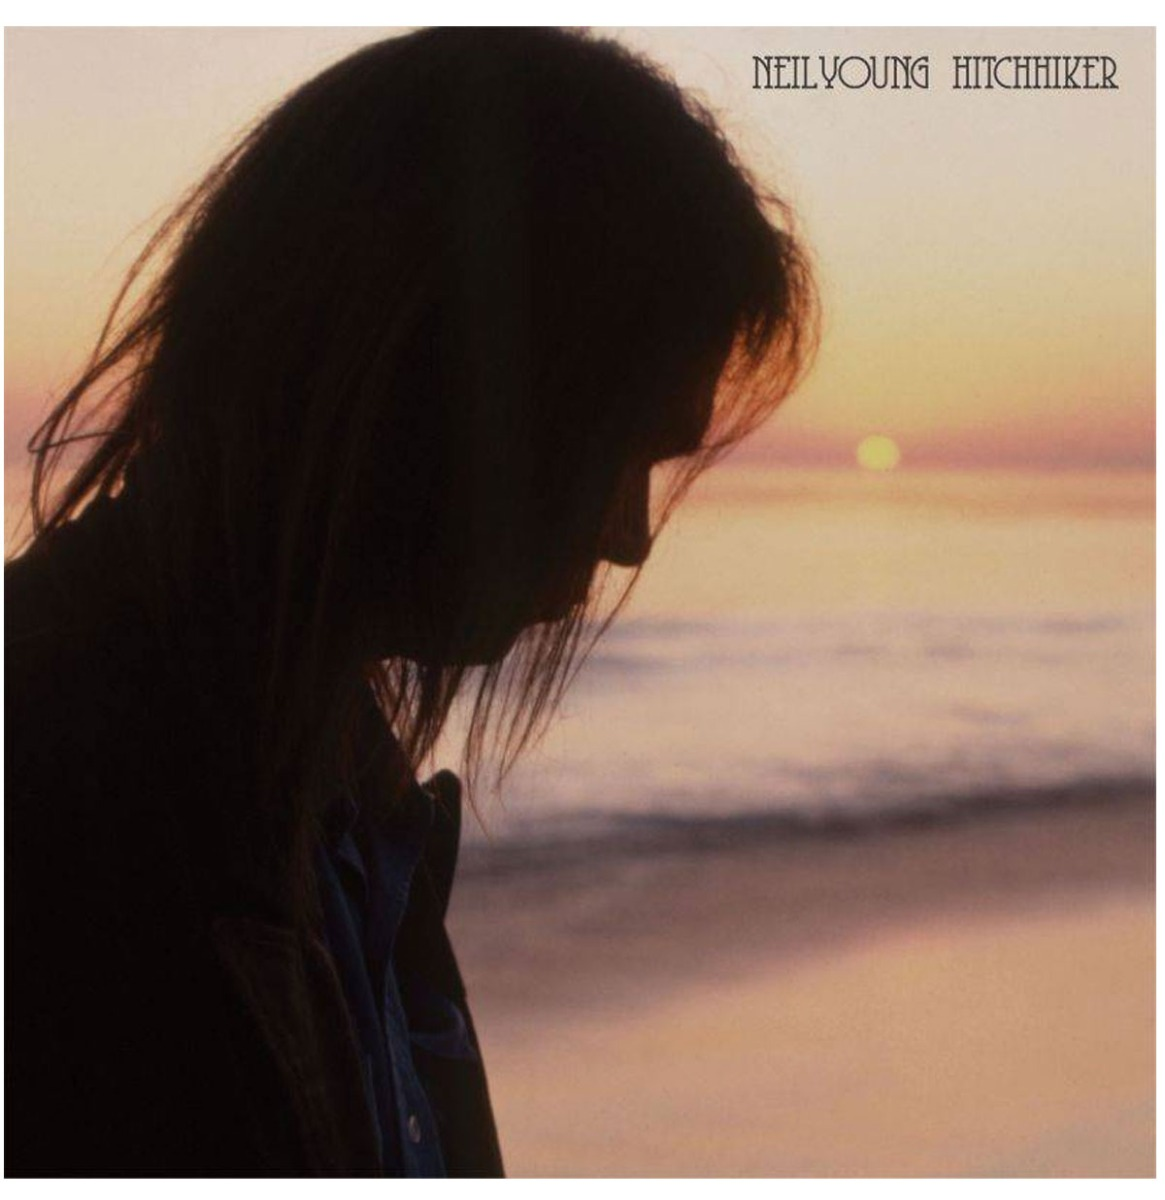 Neil Young - Hitchhiker Special Release Series